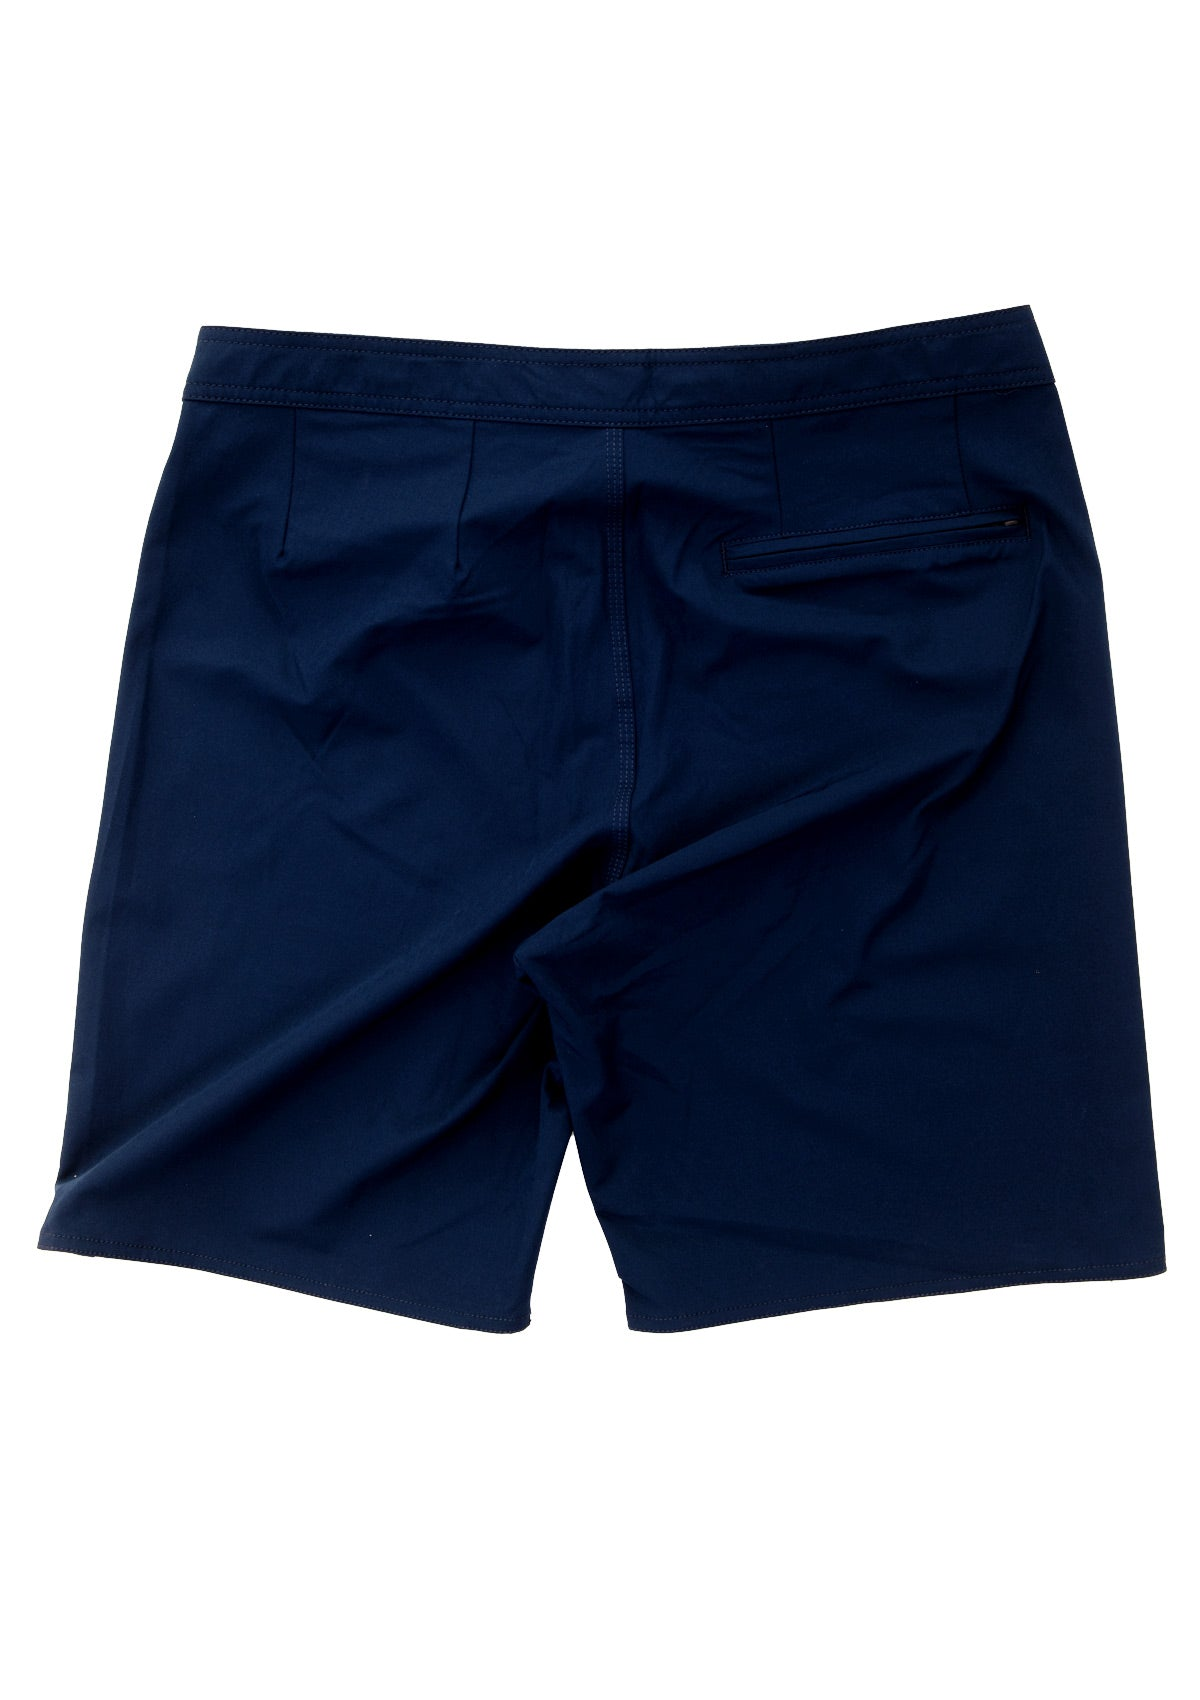 "needessentials 20"" mens surfing boardshorts non branded navy swimming"